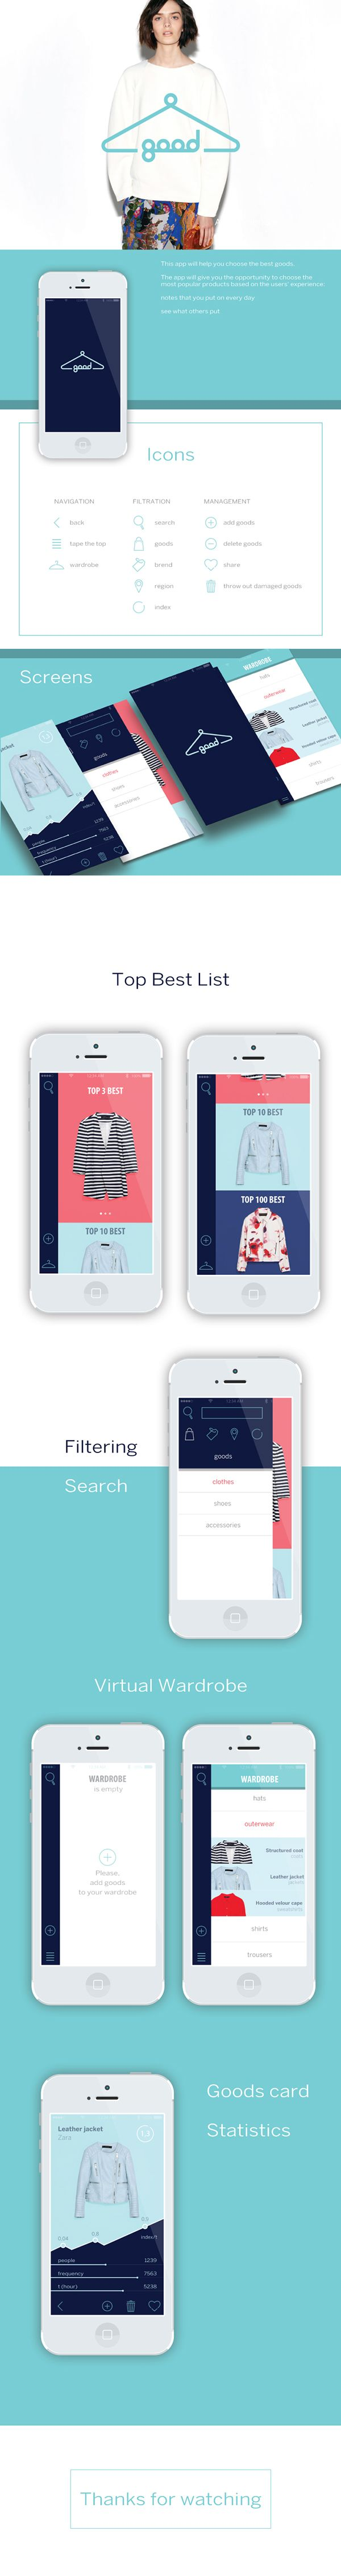 Iphone App GOODGOODS by Daniliuk Viktoryia, via Behance